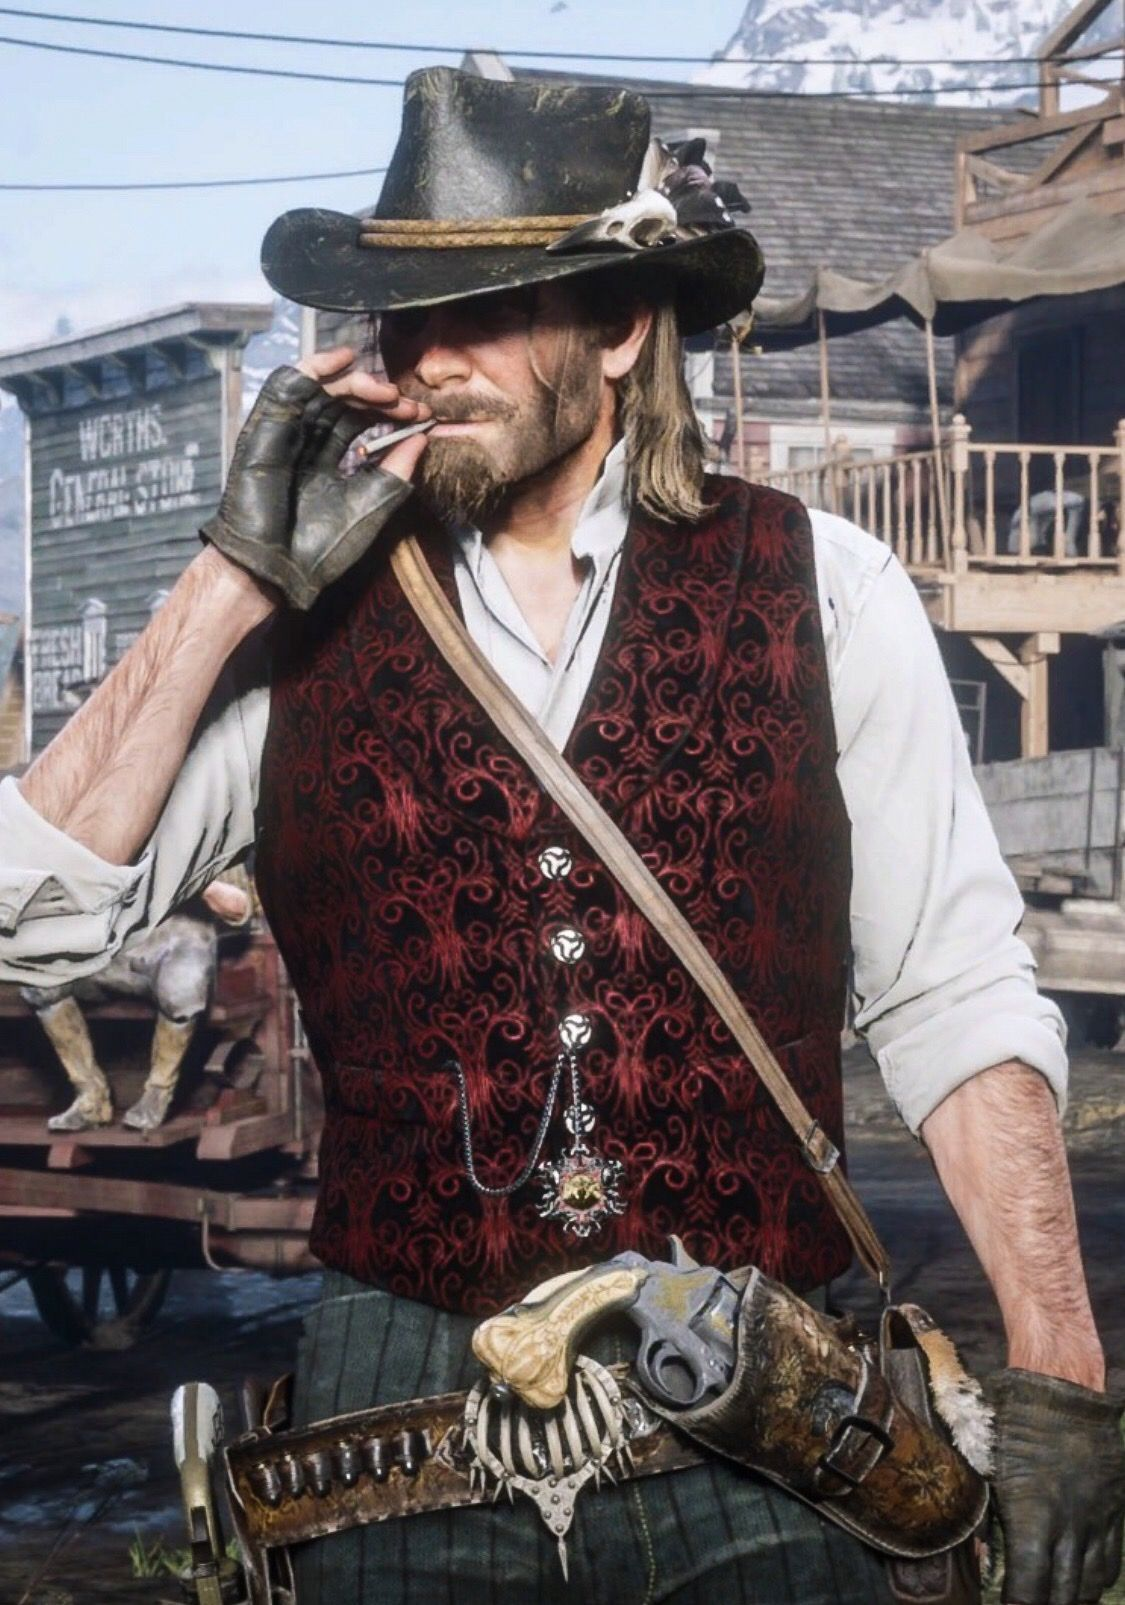 Cool Rdr2 Outfits : outfits, Outfits, Arthur, Redemption, Artwork,